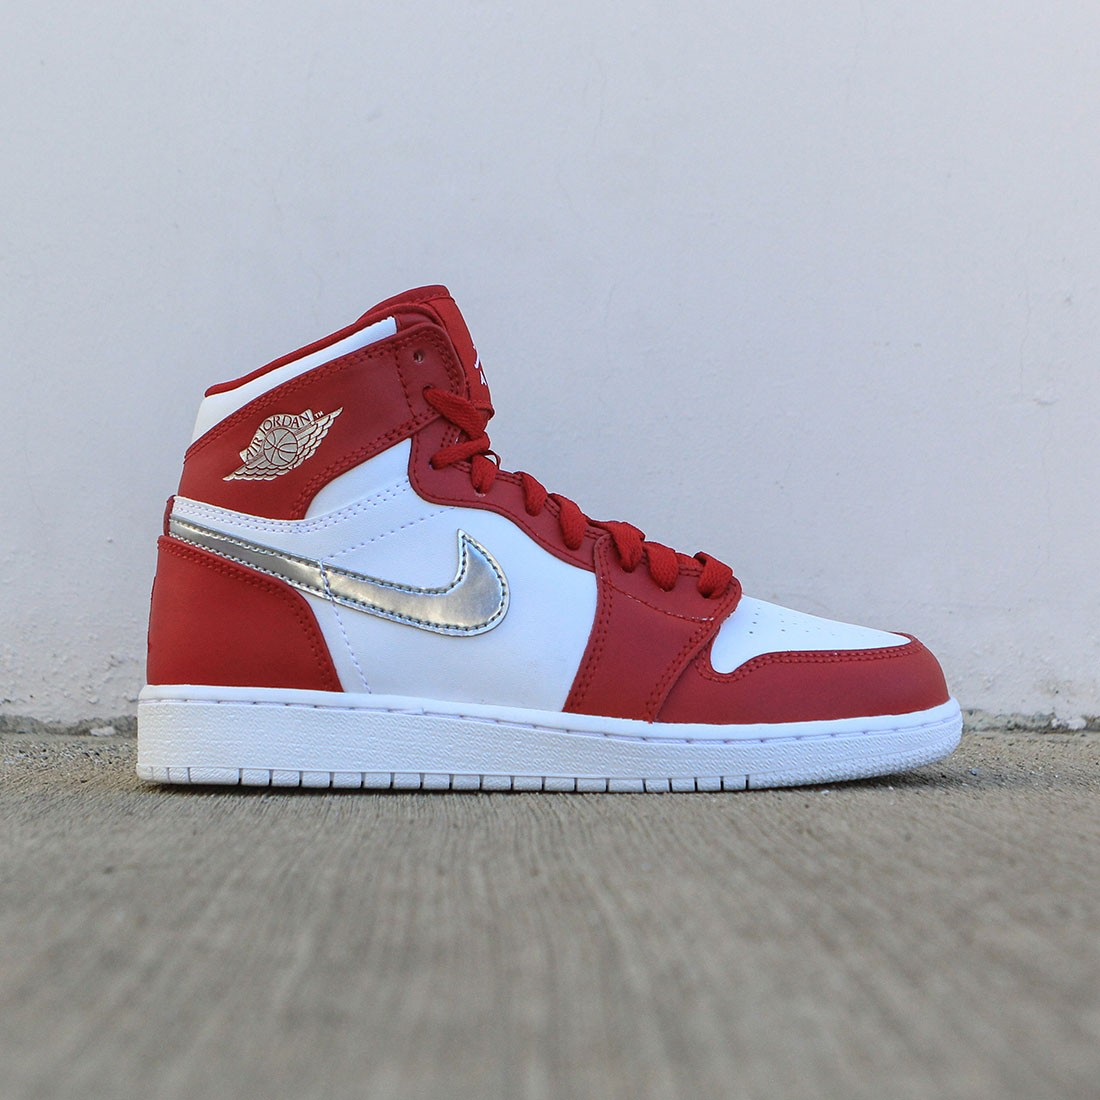 wholesale dealer 290aa 2e537 Air Jordan 1 Retro High (GS) Big Kids (gym red / metallic silver-white)